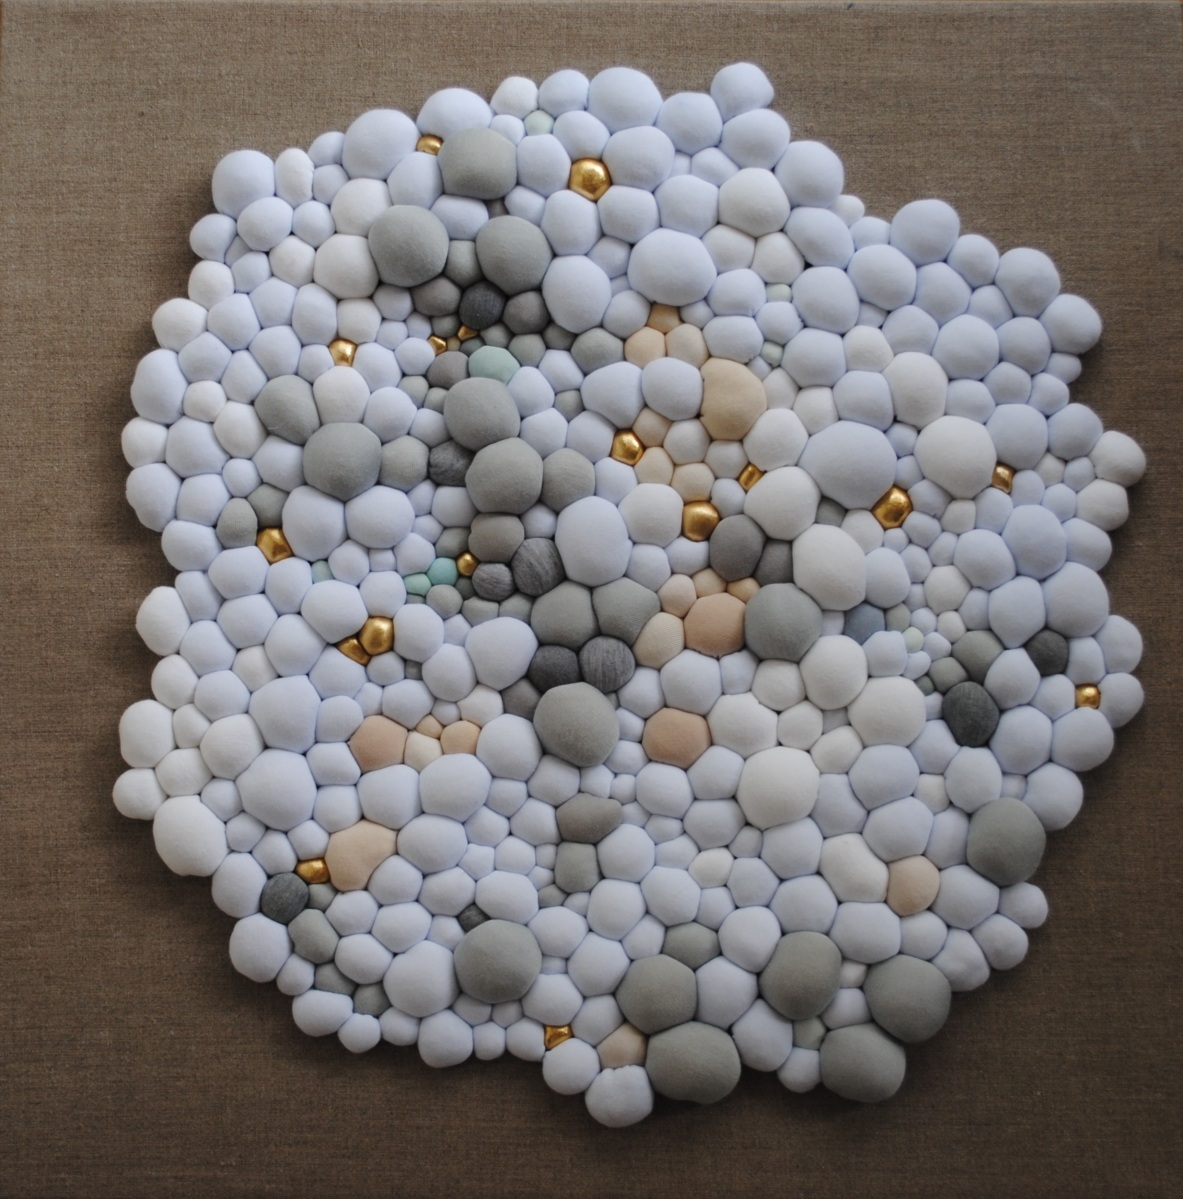 Frontal still life photo of a white-grey textile installation.